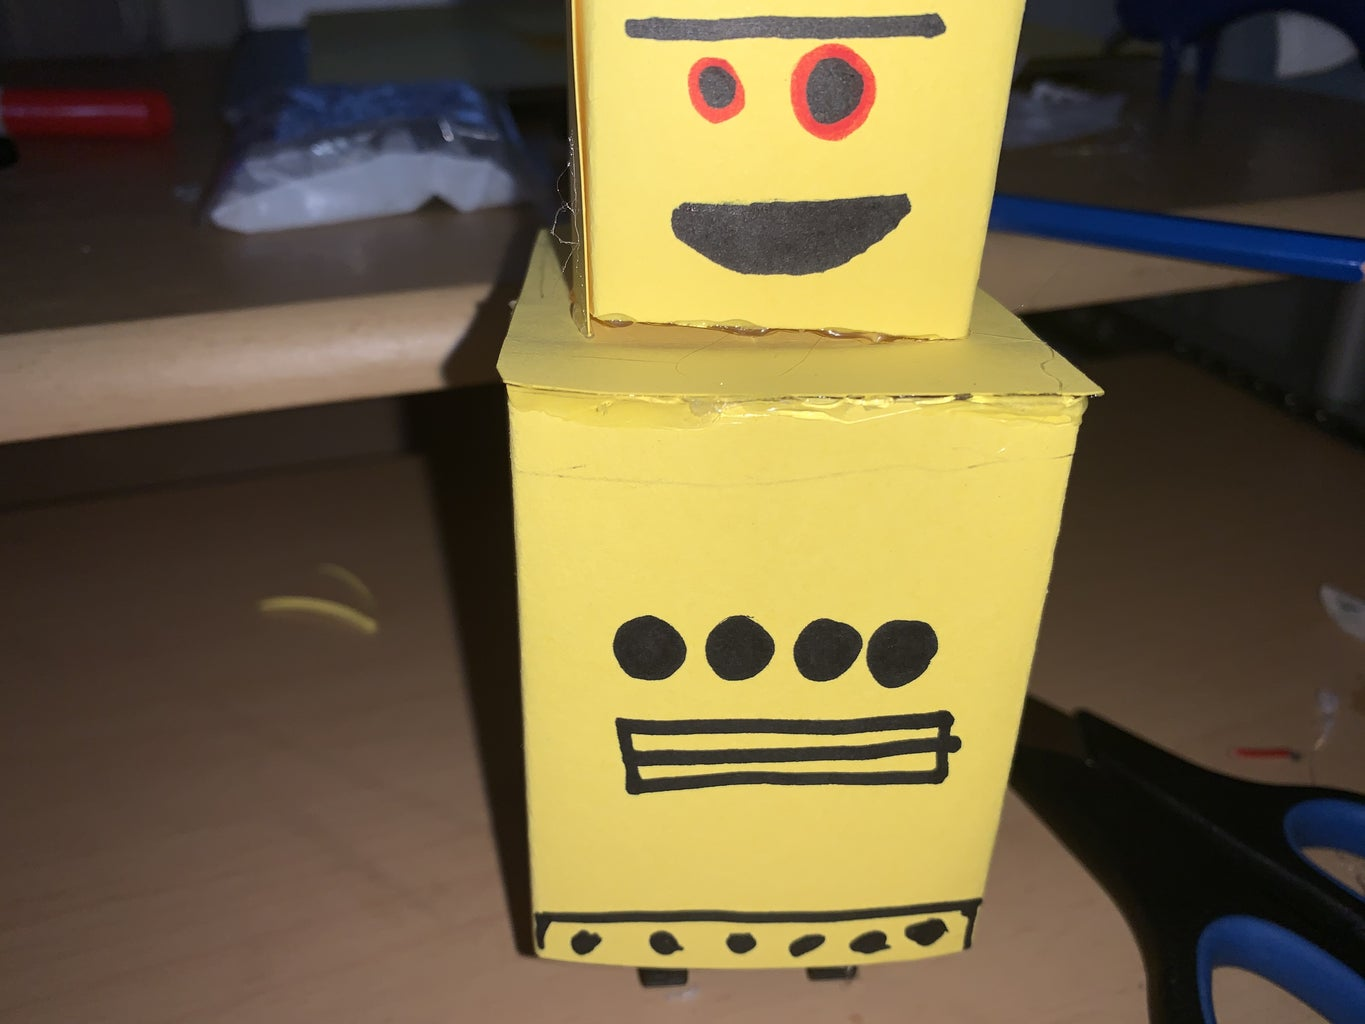 Decorate the Robot